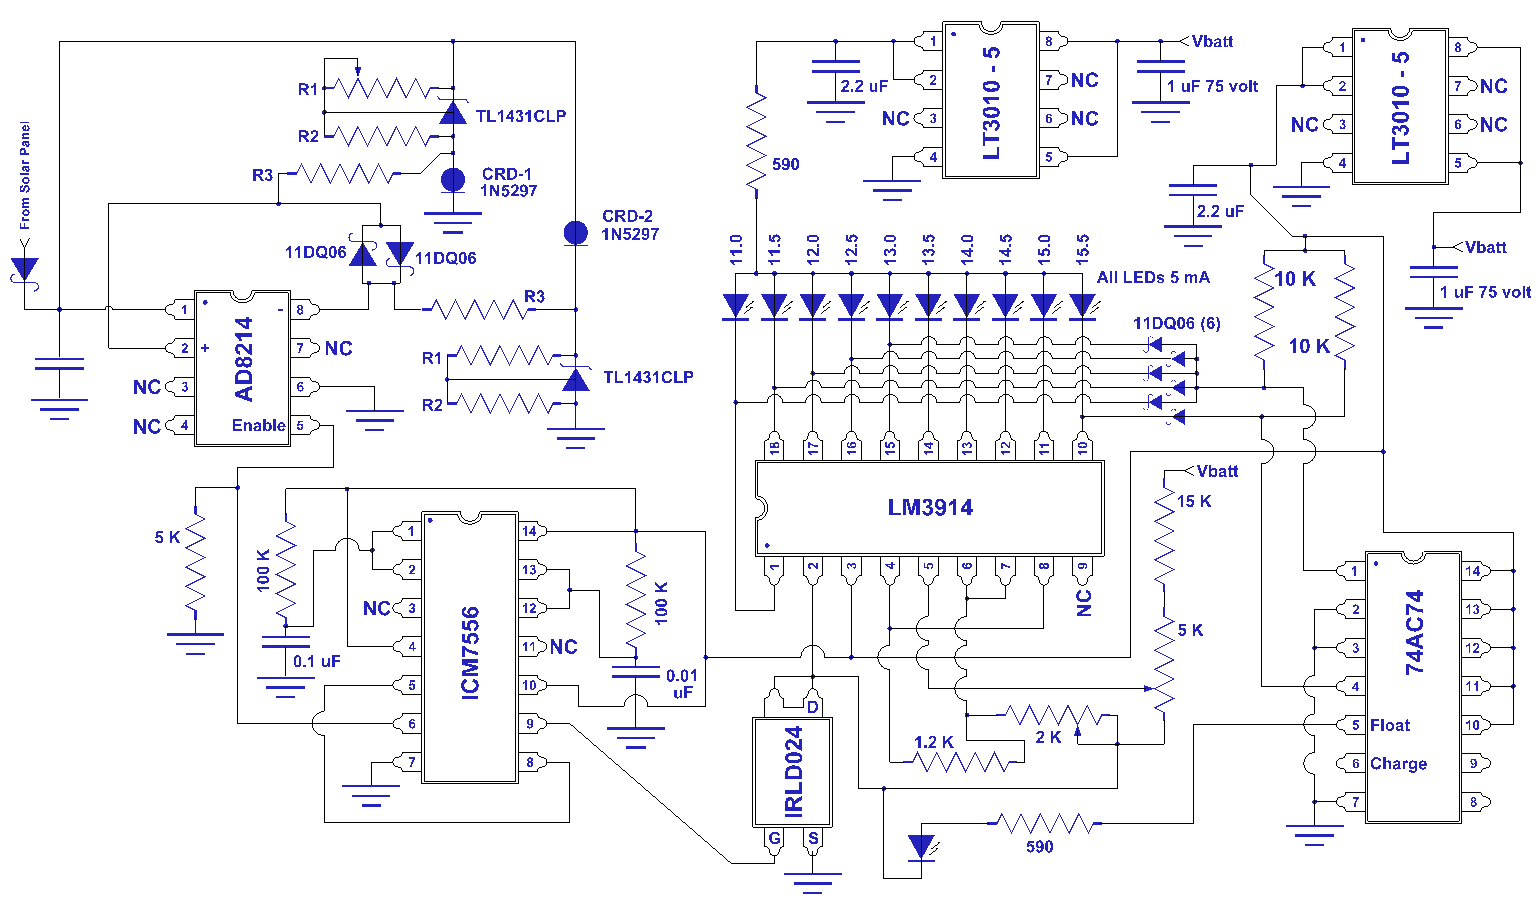 solar charge controller circuit diagram simple mppt solar rh pinterest com 24v solar charge controller circuit diagram mppt solar charge controller circuit diagram